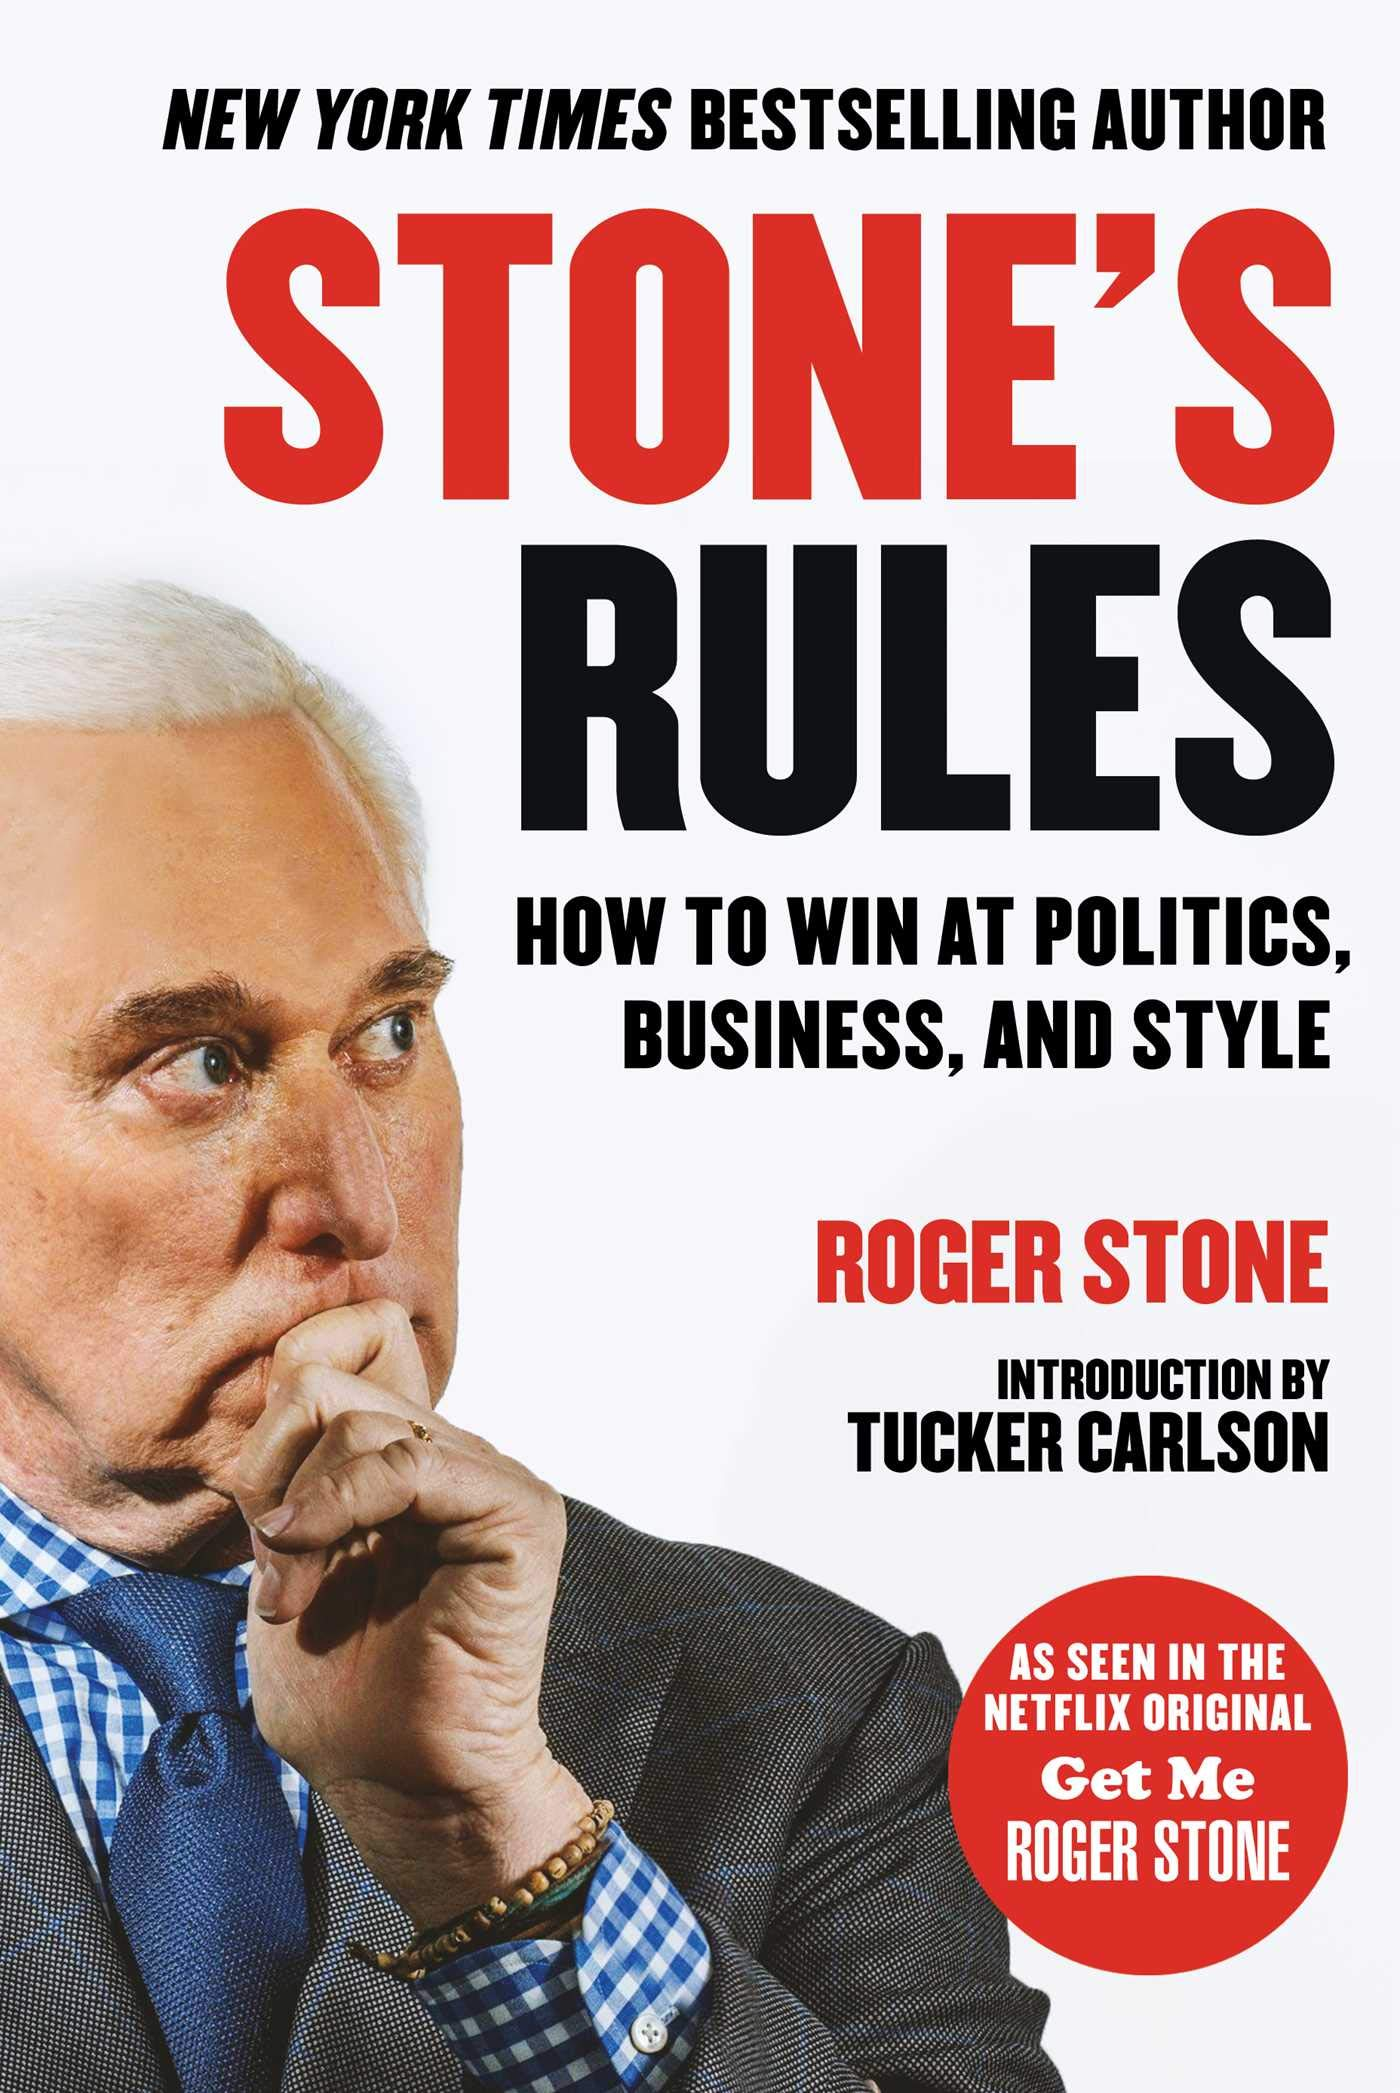 Amazon.com: Stone's Rules: How to Win at Politics, Business, and Style  (9781510740082): Roger Stone, Tucker Carlson: Books